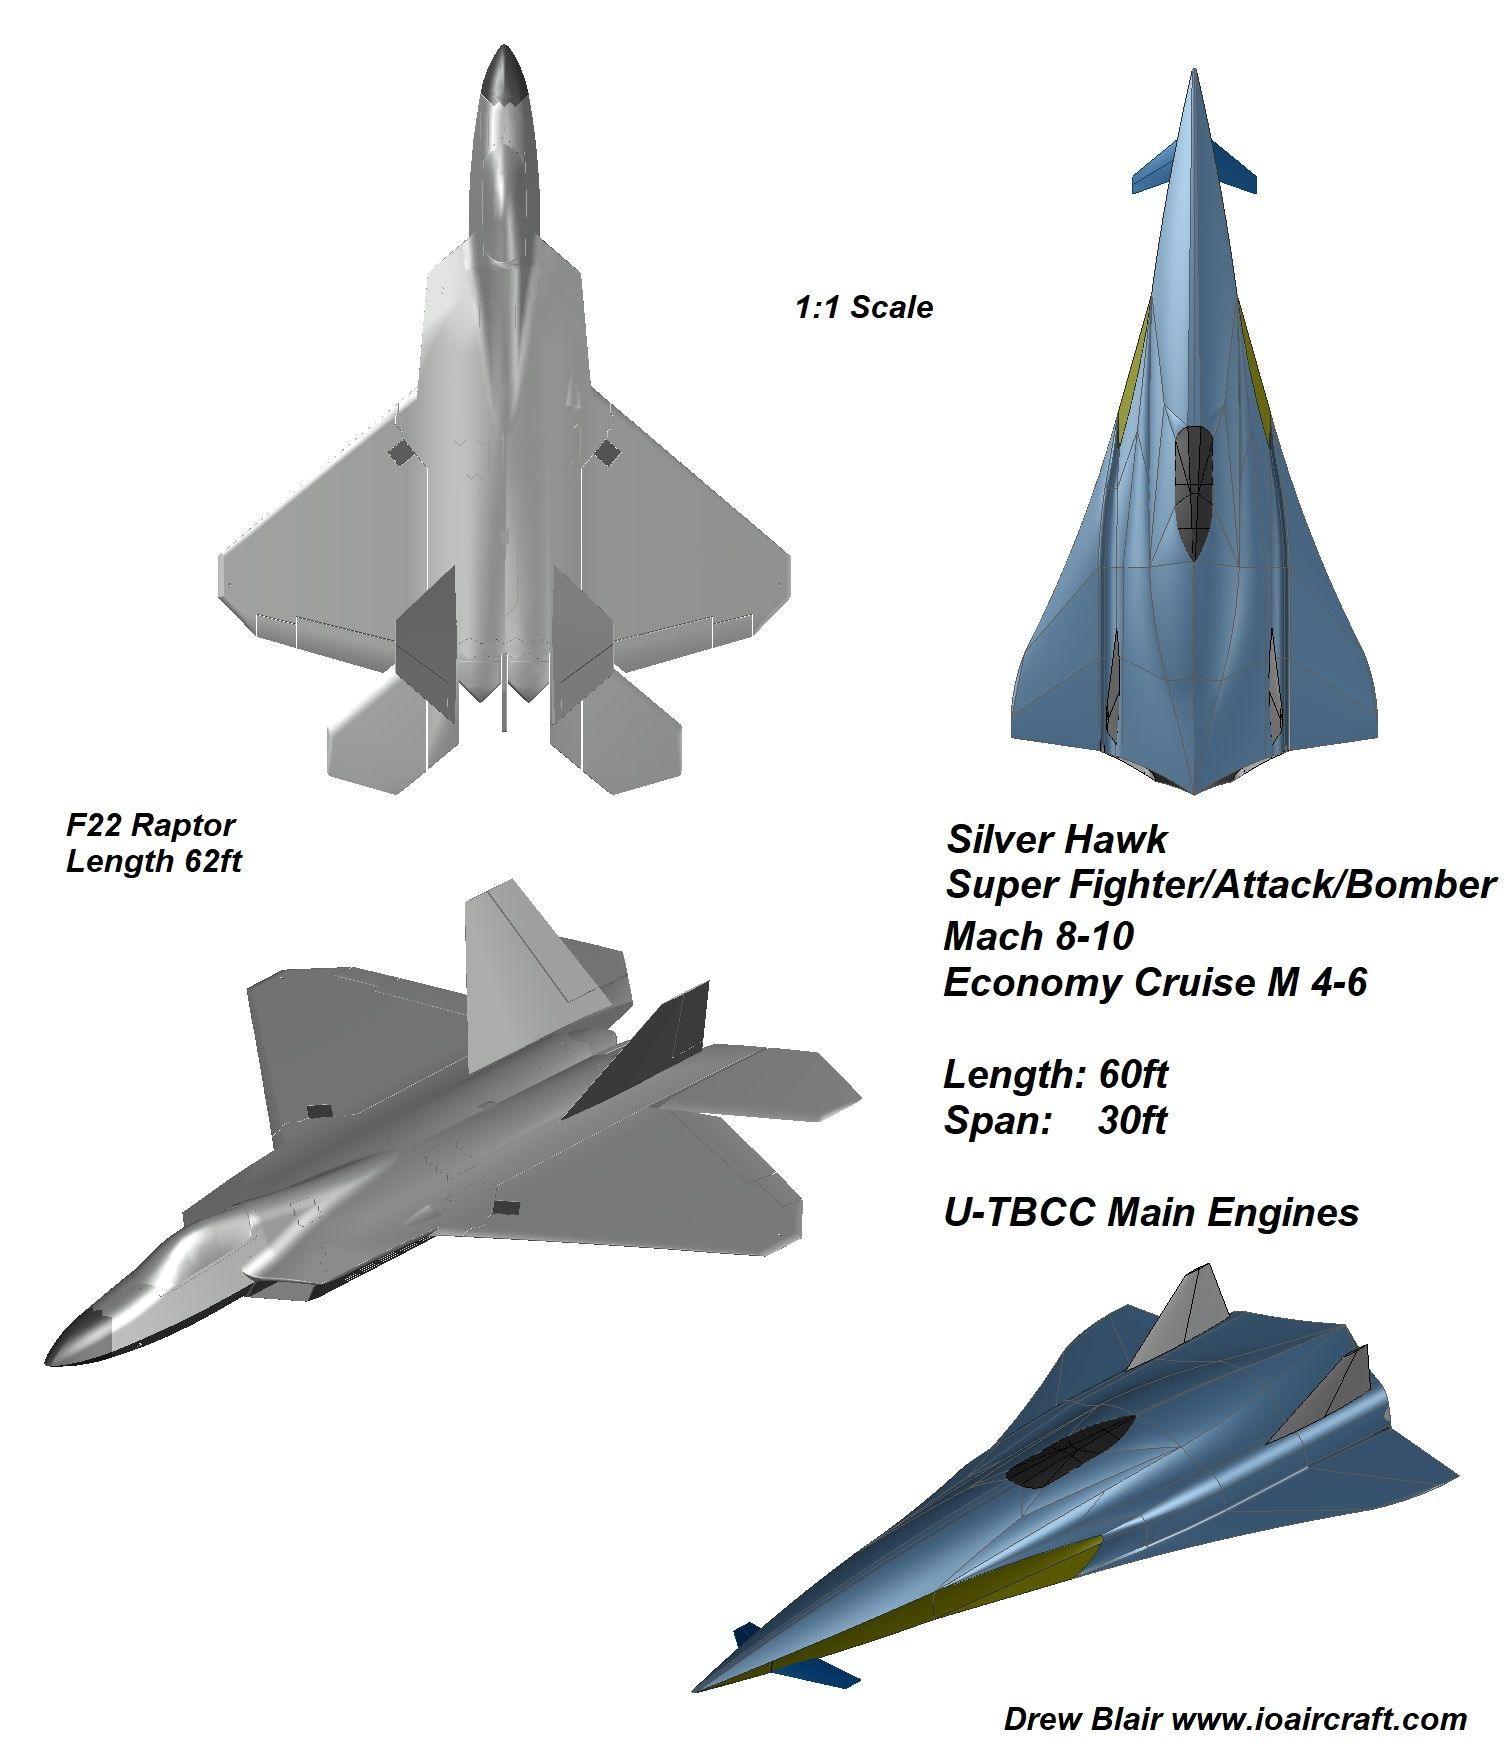 8th Gen Mach 8 10 Hypersonic Fighter Plane F22 Rapotor Size Comparison Silver Hawk Io Aircraft Aircraft Fighter Jets Fighter